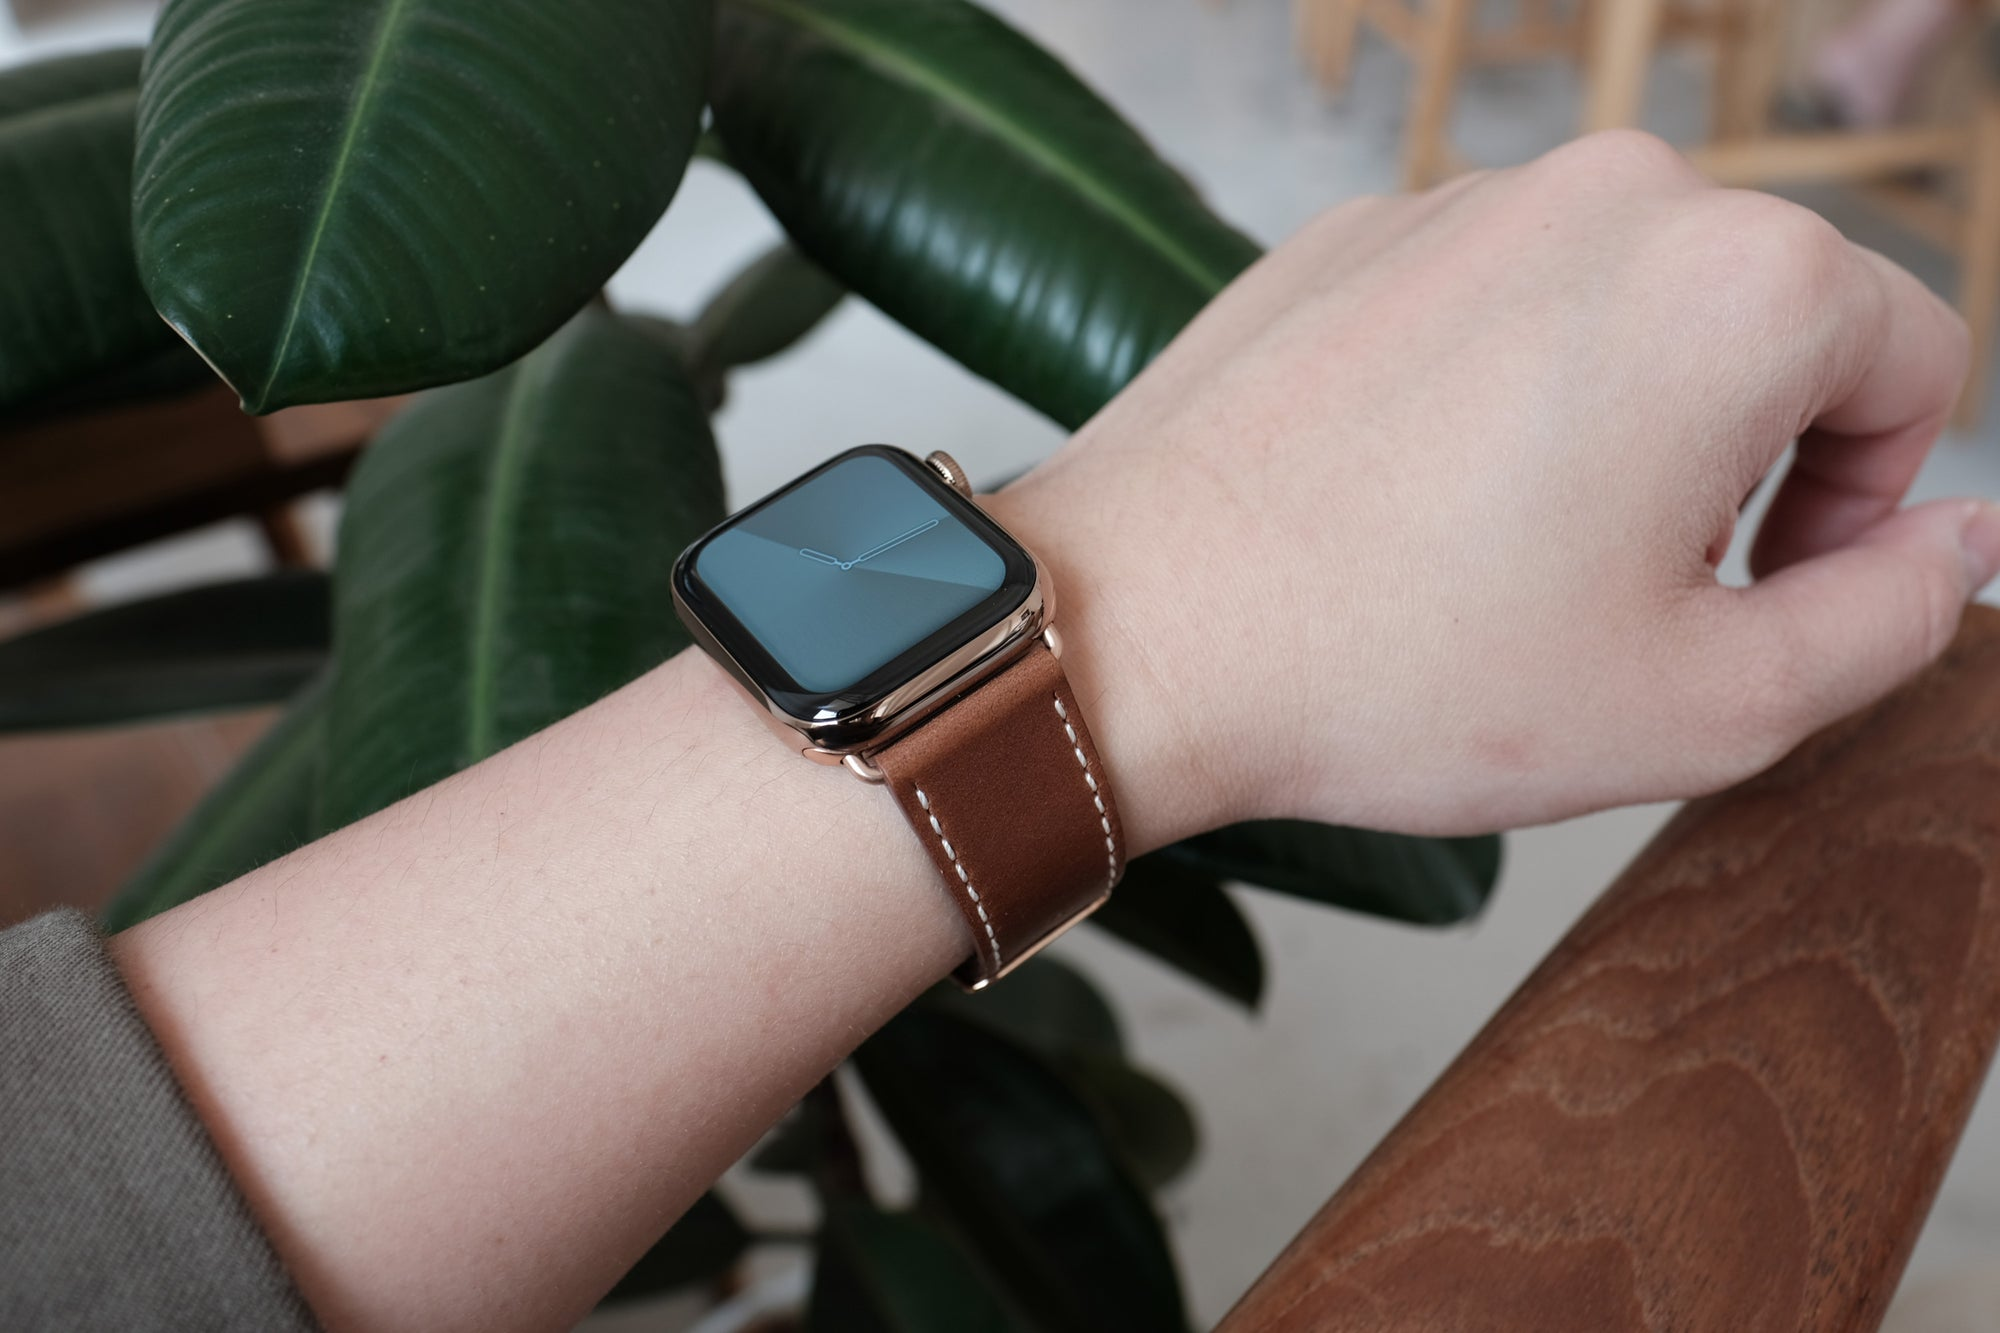 Pin and Buckle Apple Watch Bands - Full Grain Vegetable Tanned Leather - Luxe - Chestnut Brown - 3